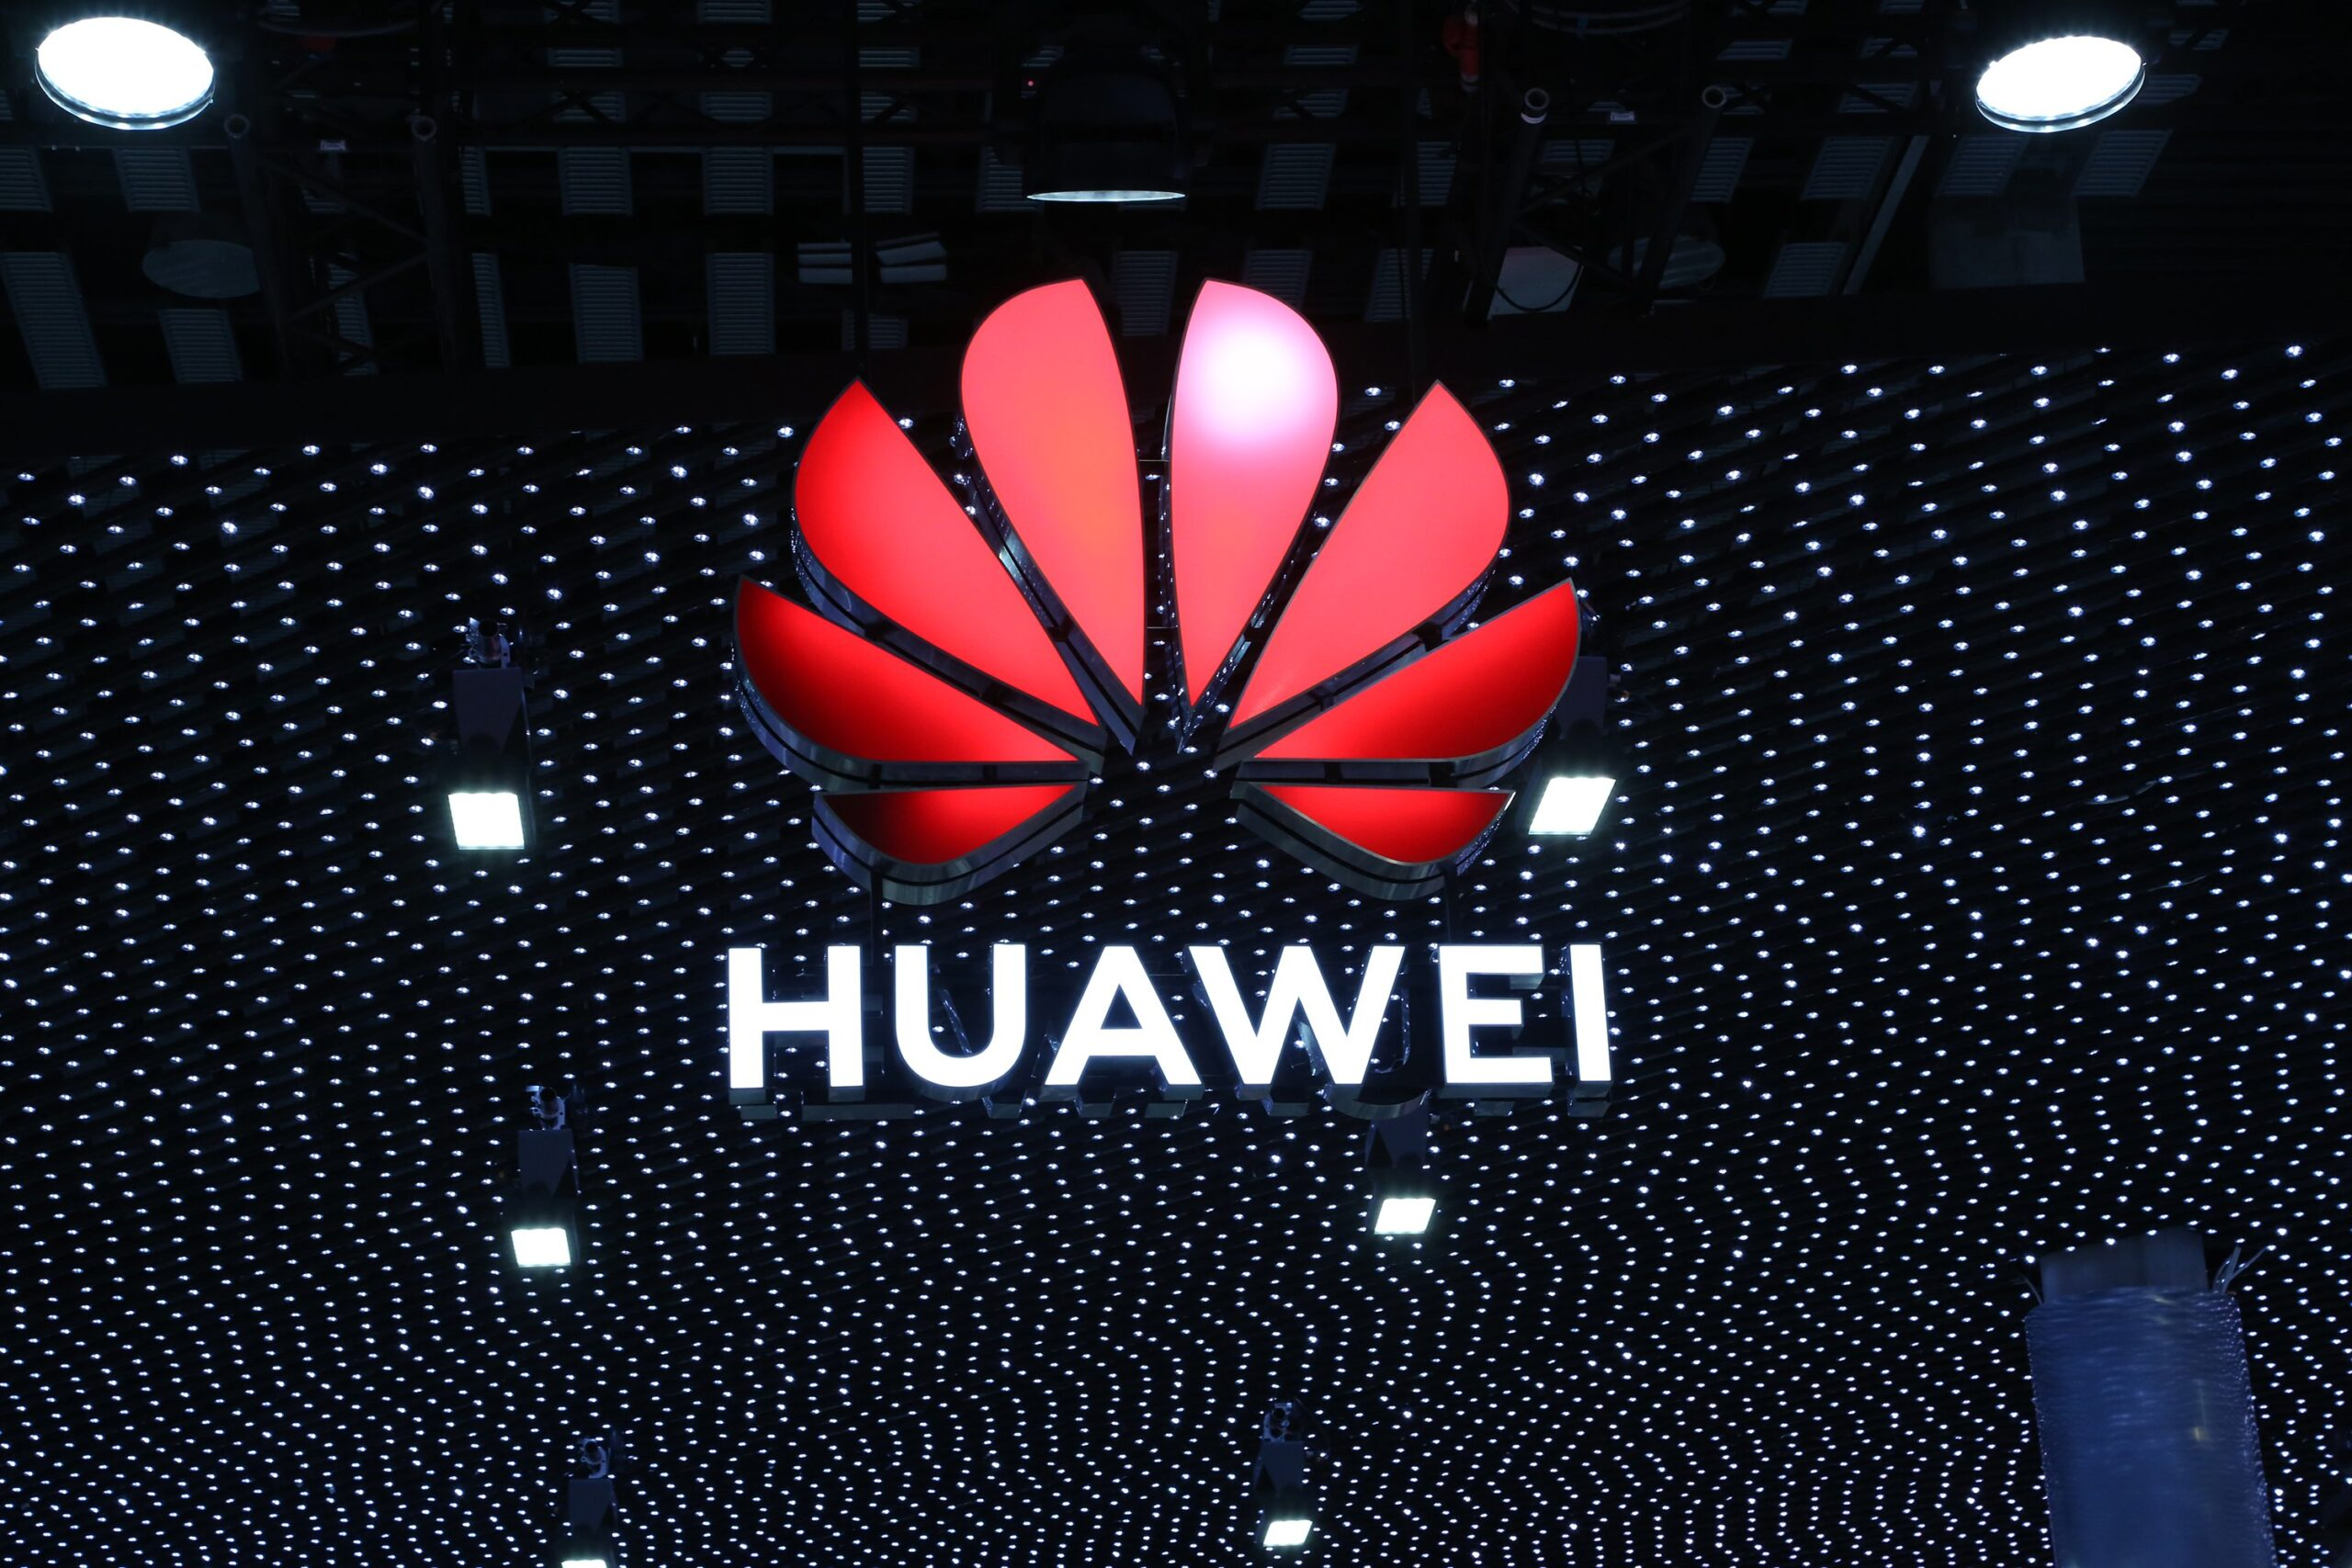 Huawei slows down smartphone production due to recent US Sanctions 2